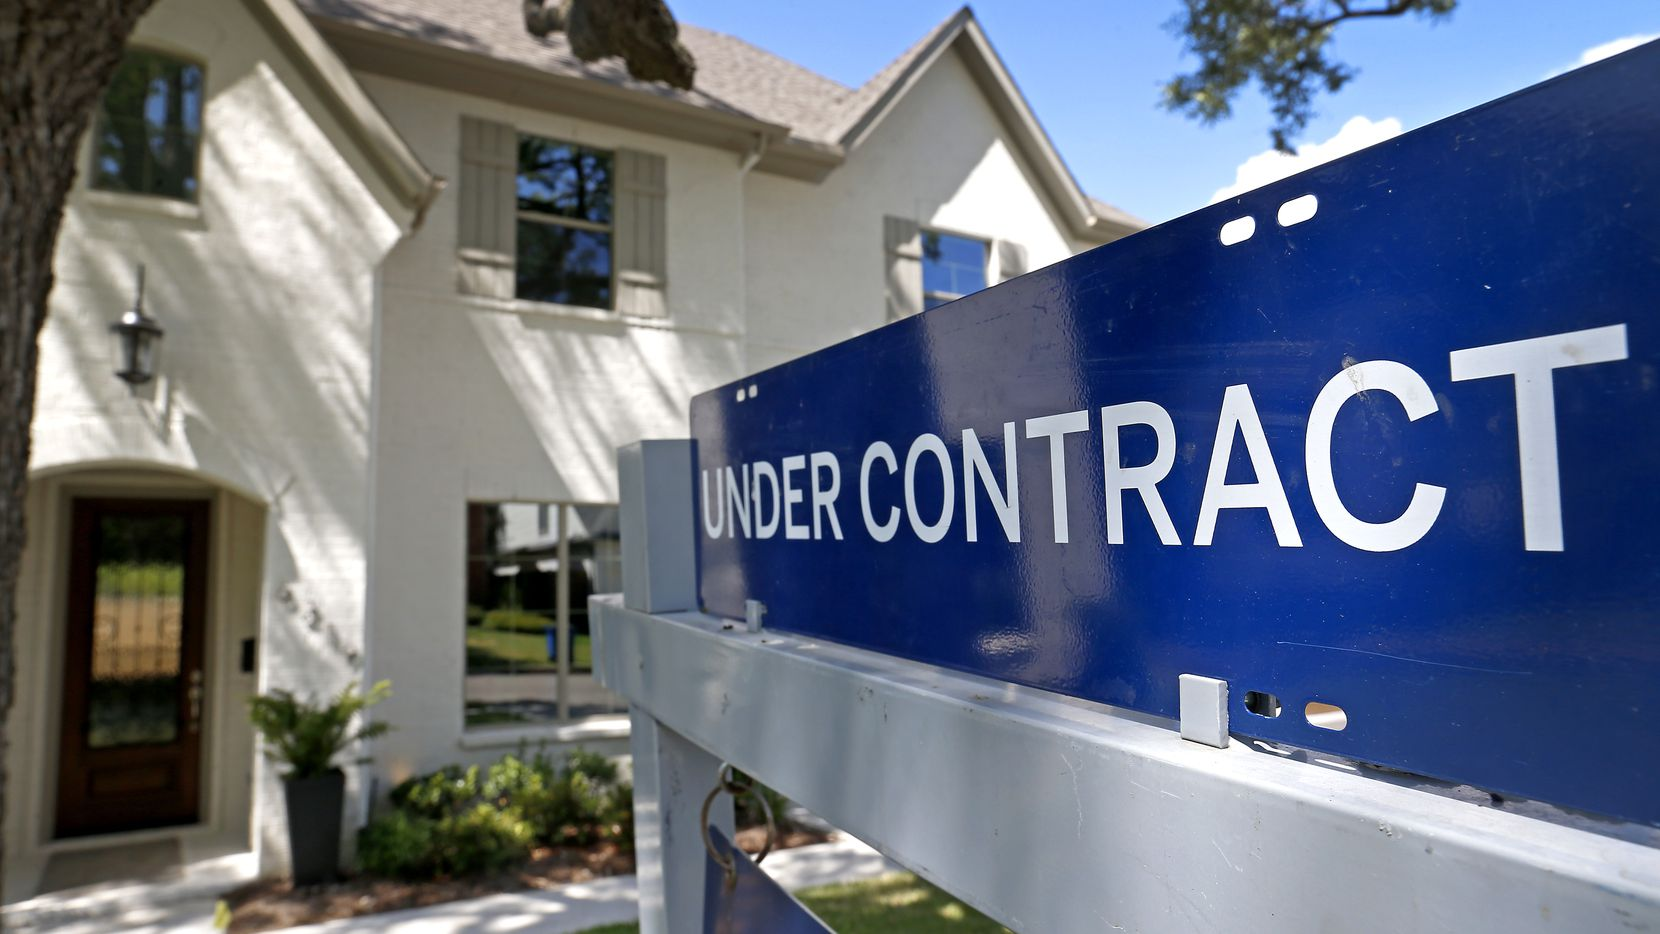 To qualify for a mortgage on a midpriced D-FW home, you'll need to earn about $59,500 a year.